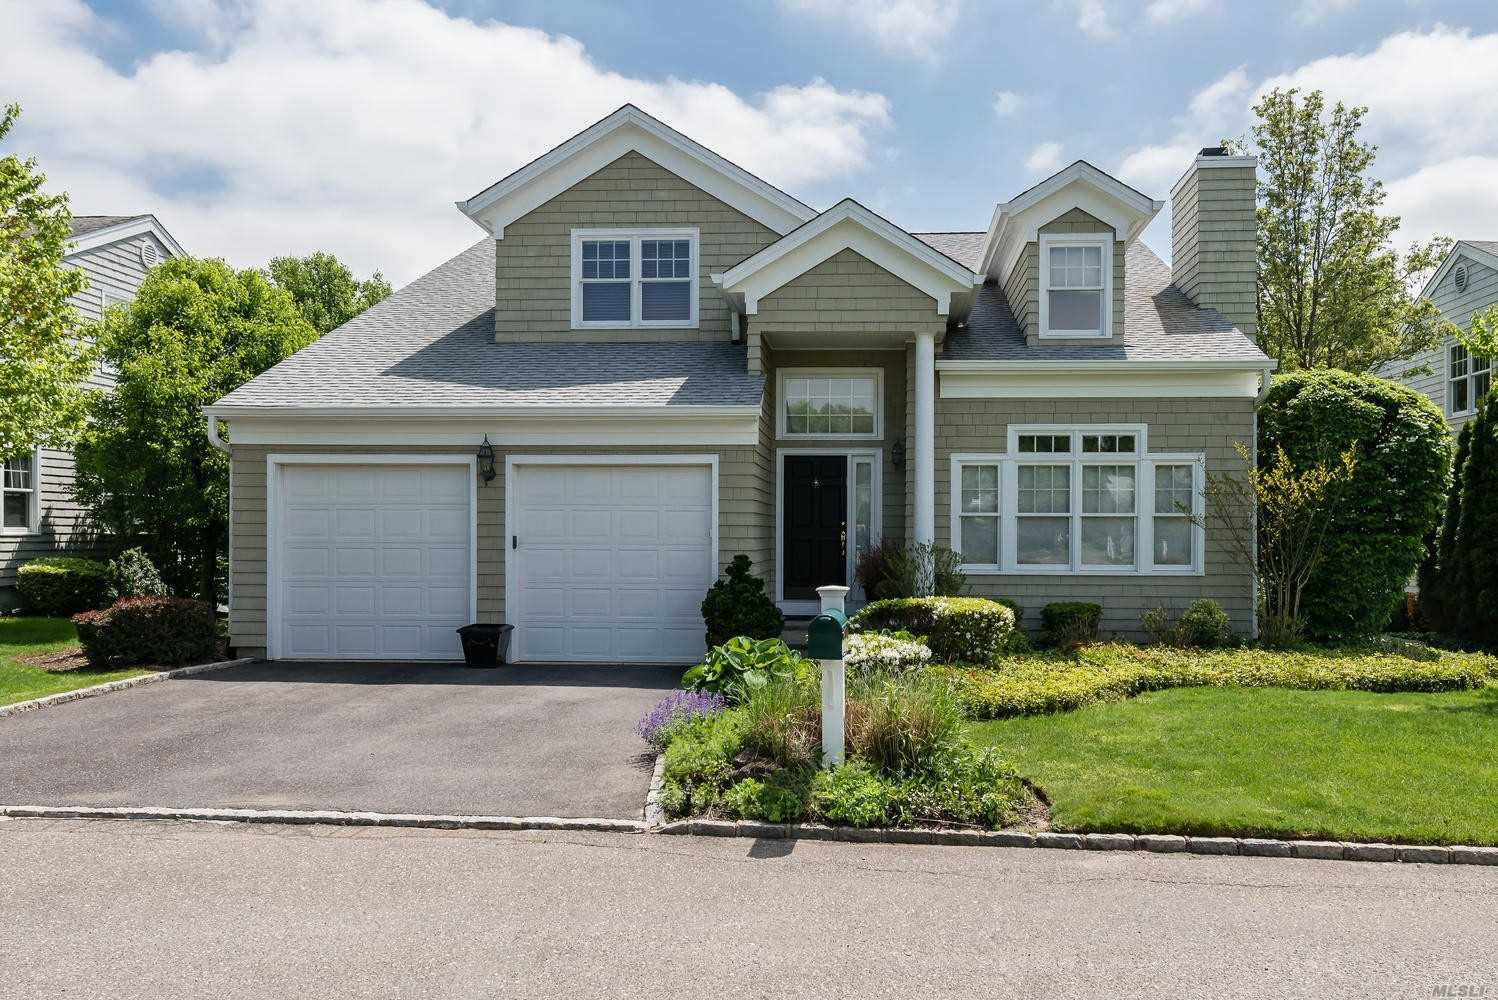 Photo of home for sale at 37 Fieldstone Ln, Oyster Bay NY